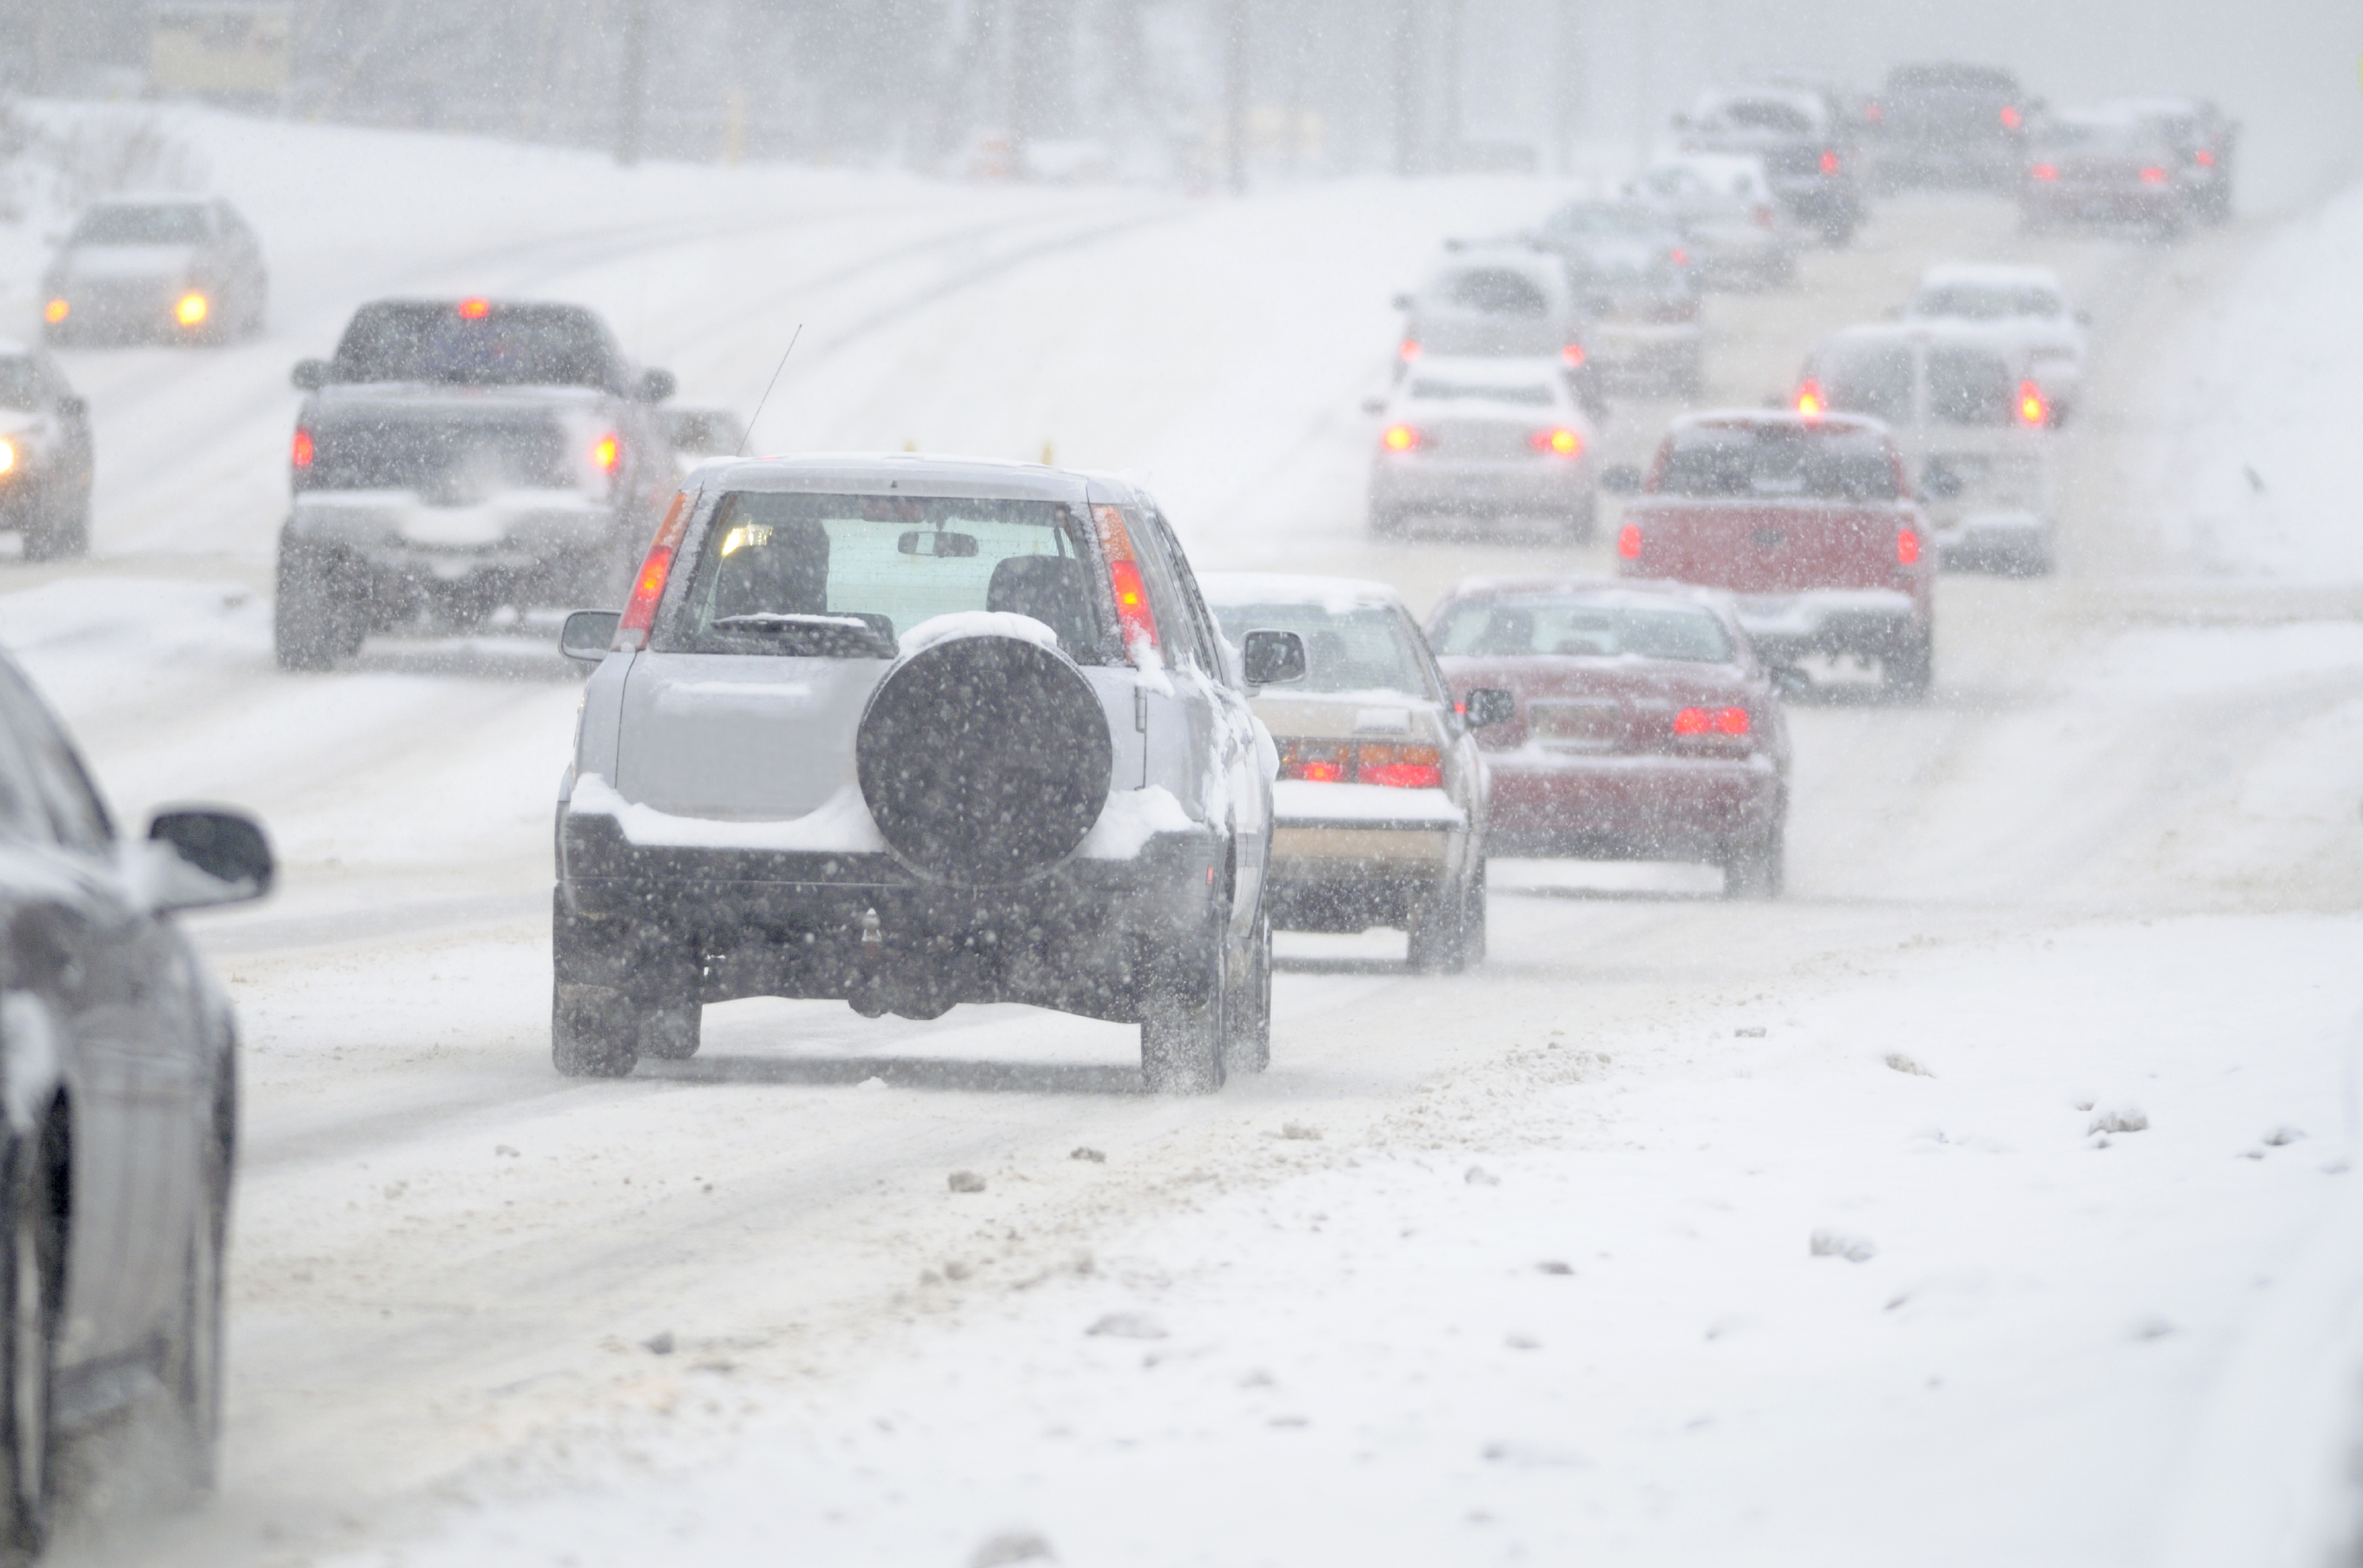 3  Stay with Your Car - Snowstorm Tip 3: Stay with Your Car